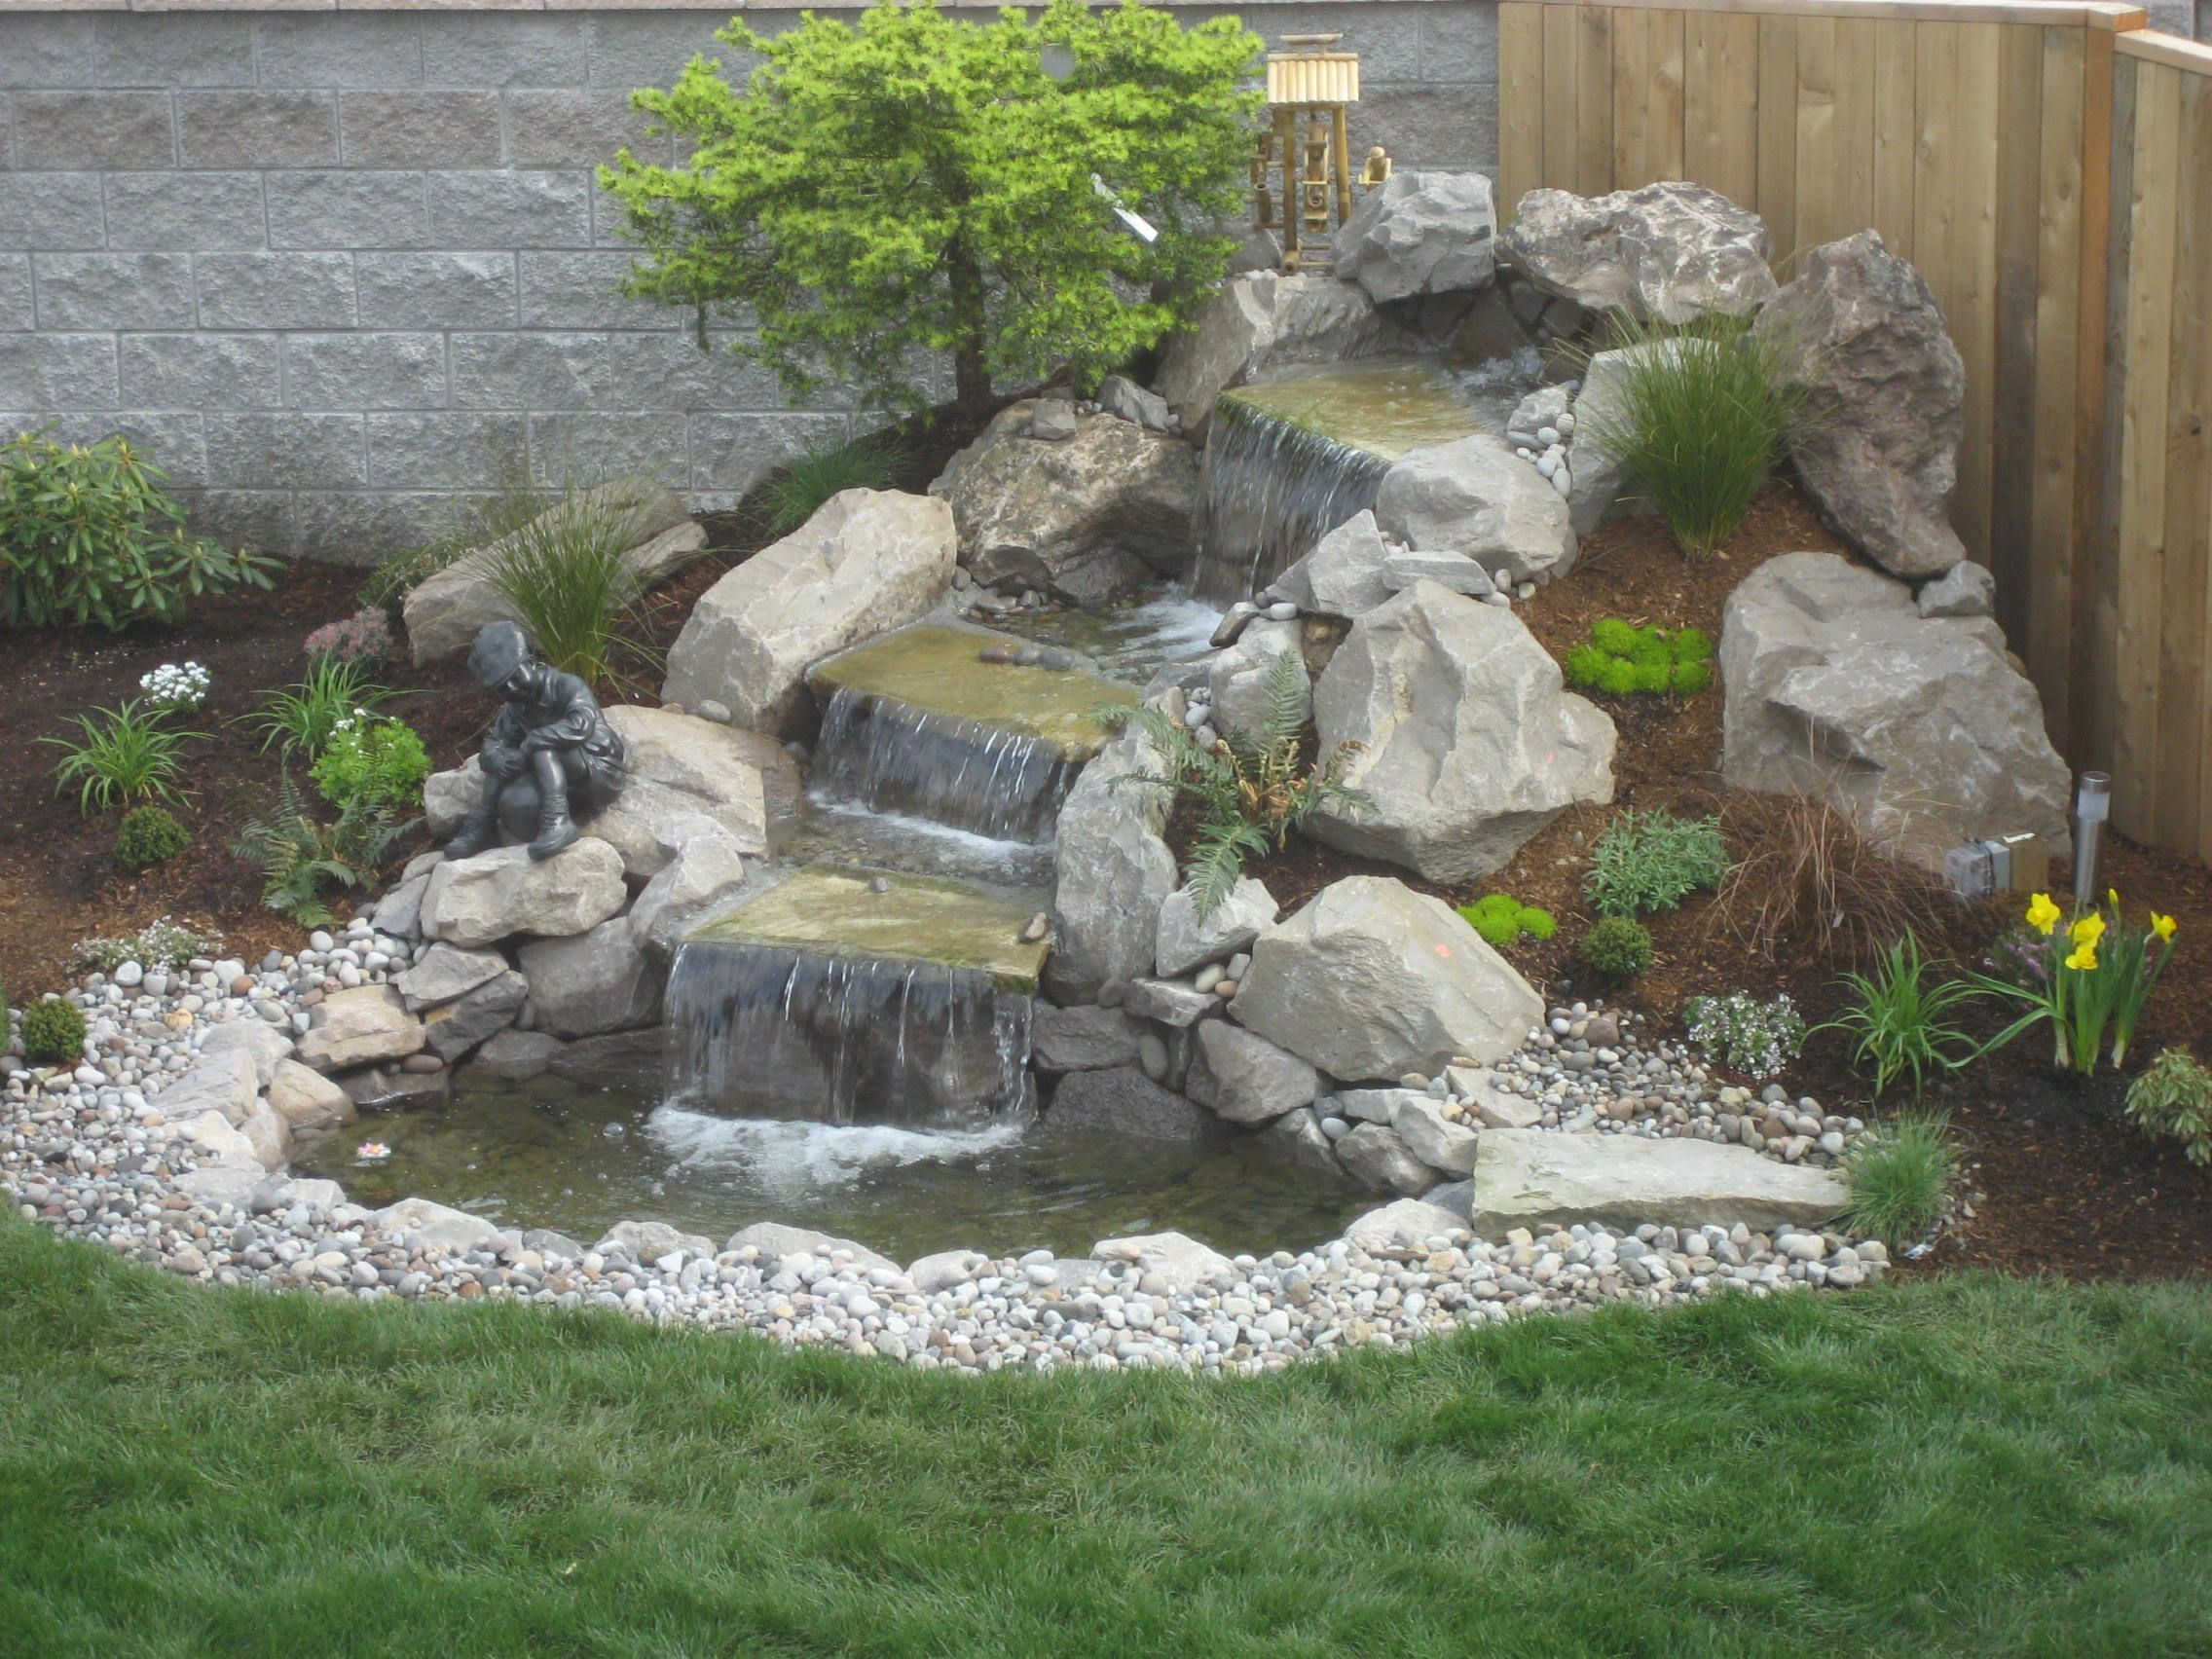 spring landscape design landscape design advice creating natural waterfall in your garden - Waterfall Landscape Design Ideas